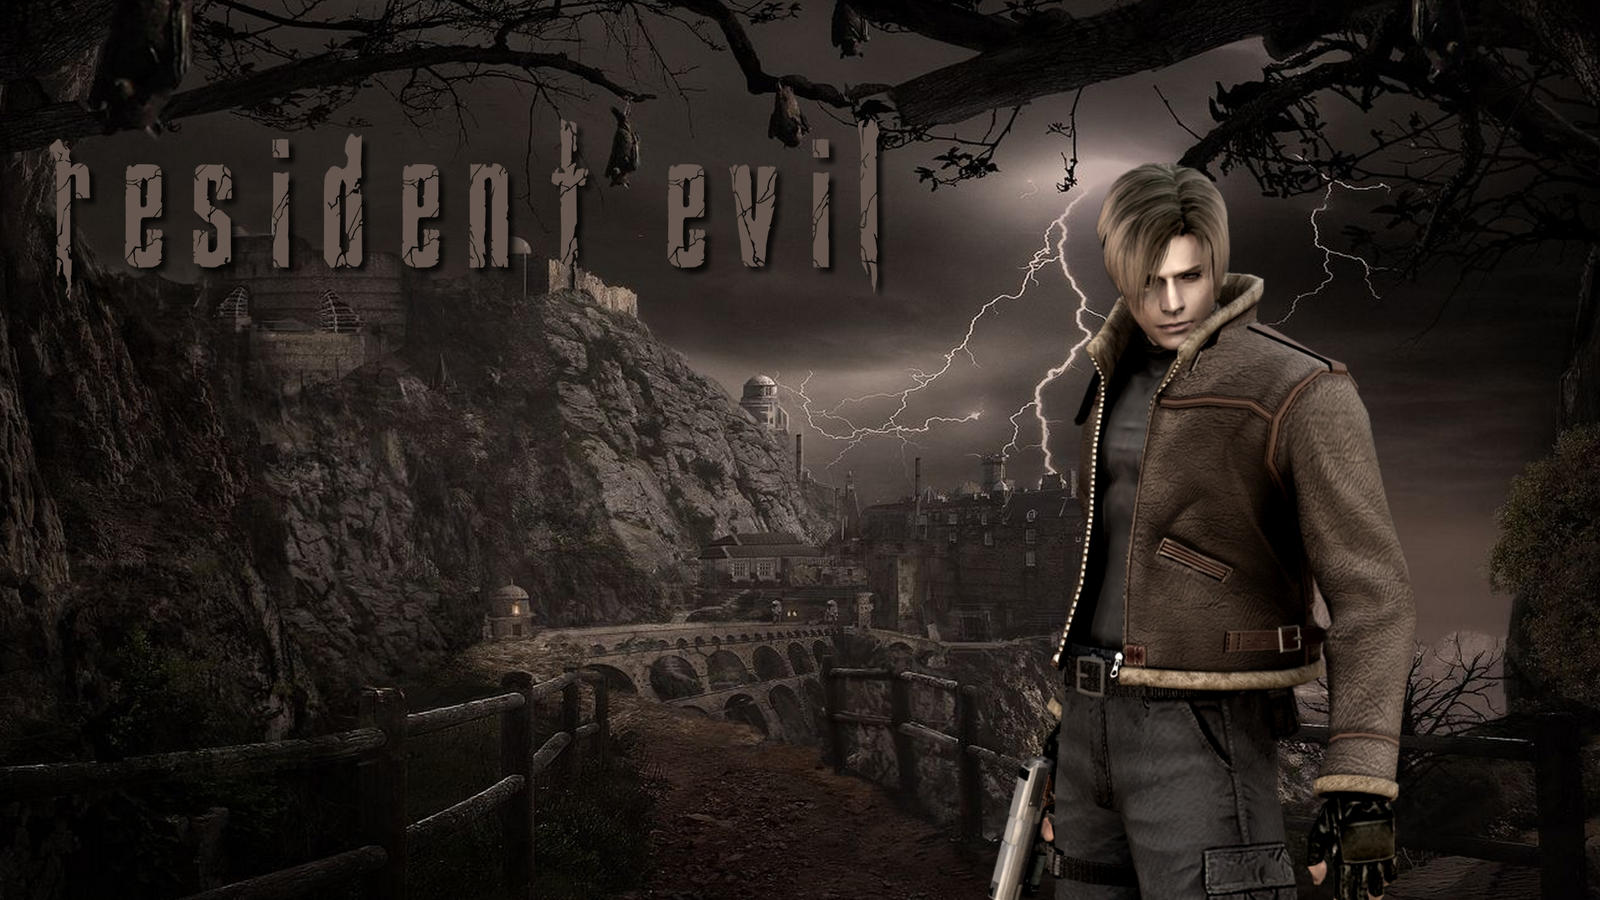 Resident Evil 4 Wallpaper By Utopya6 On Deviantart